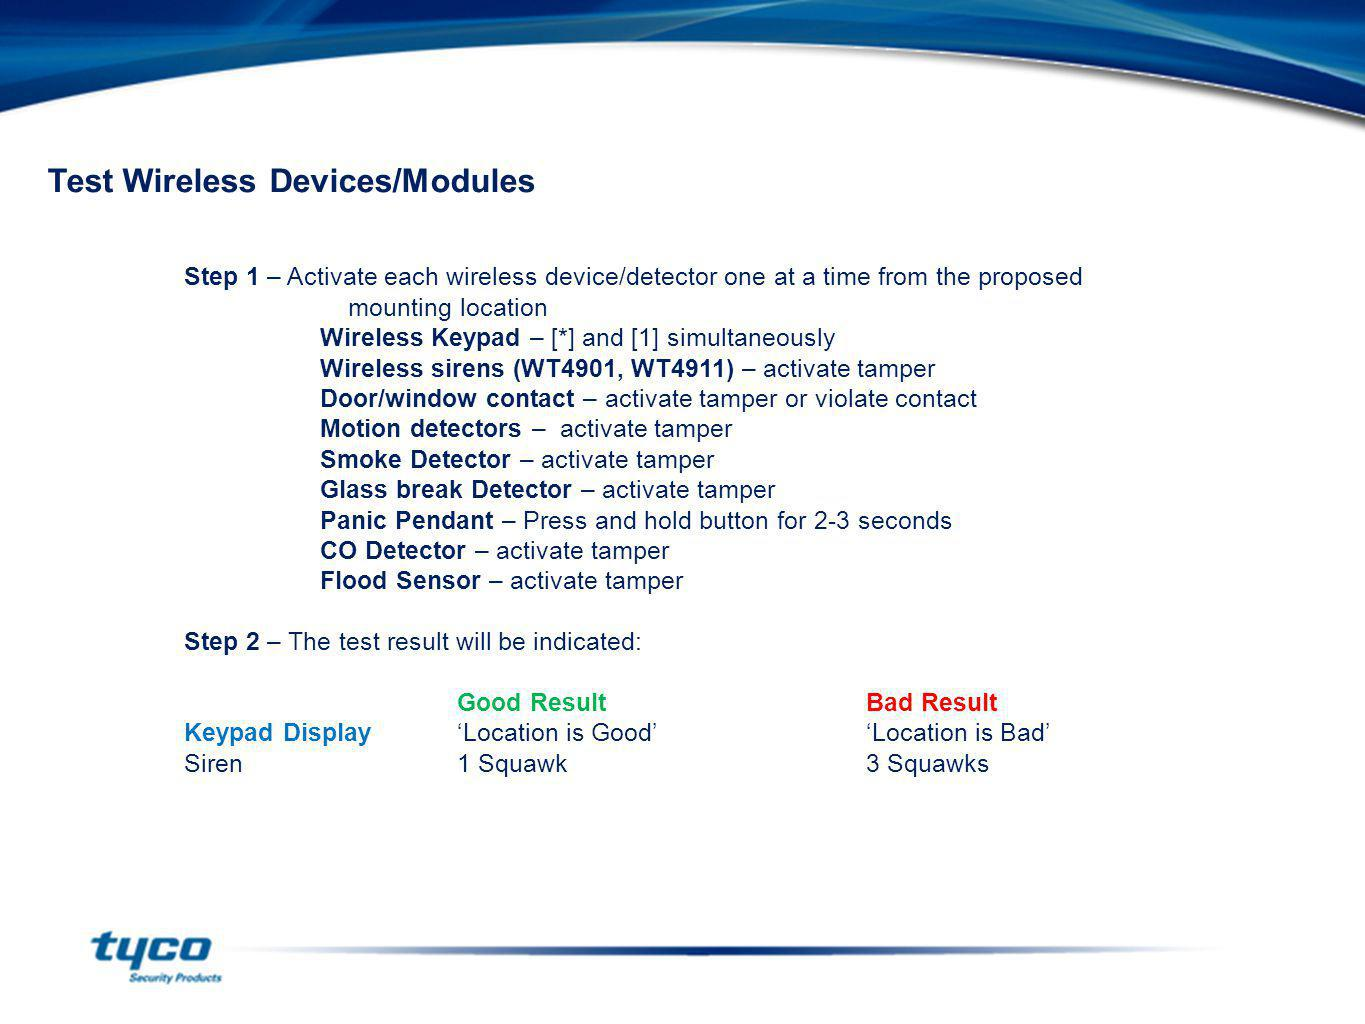 Test Wireless Devices/Modules